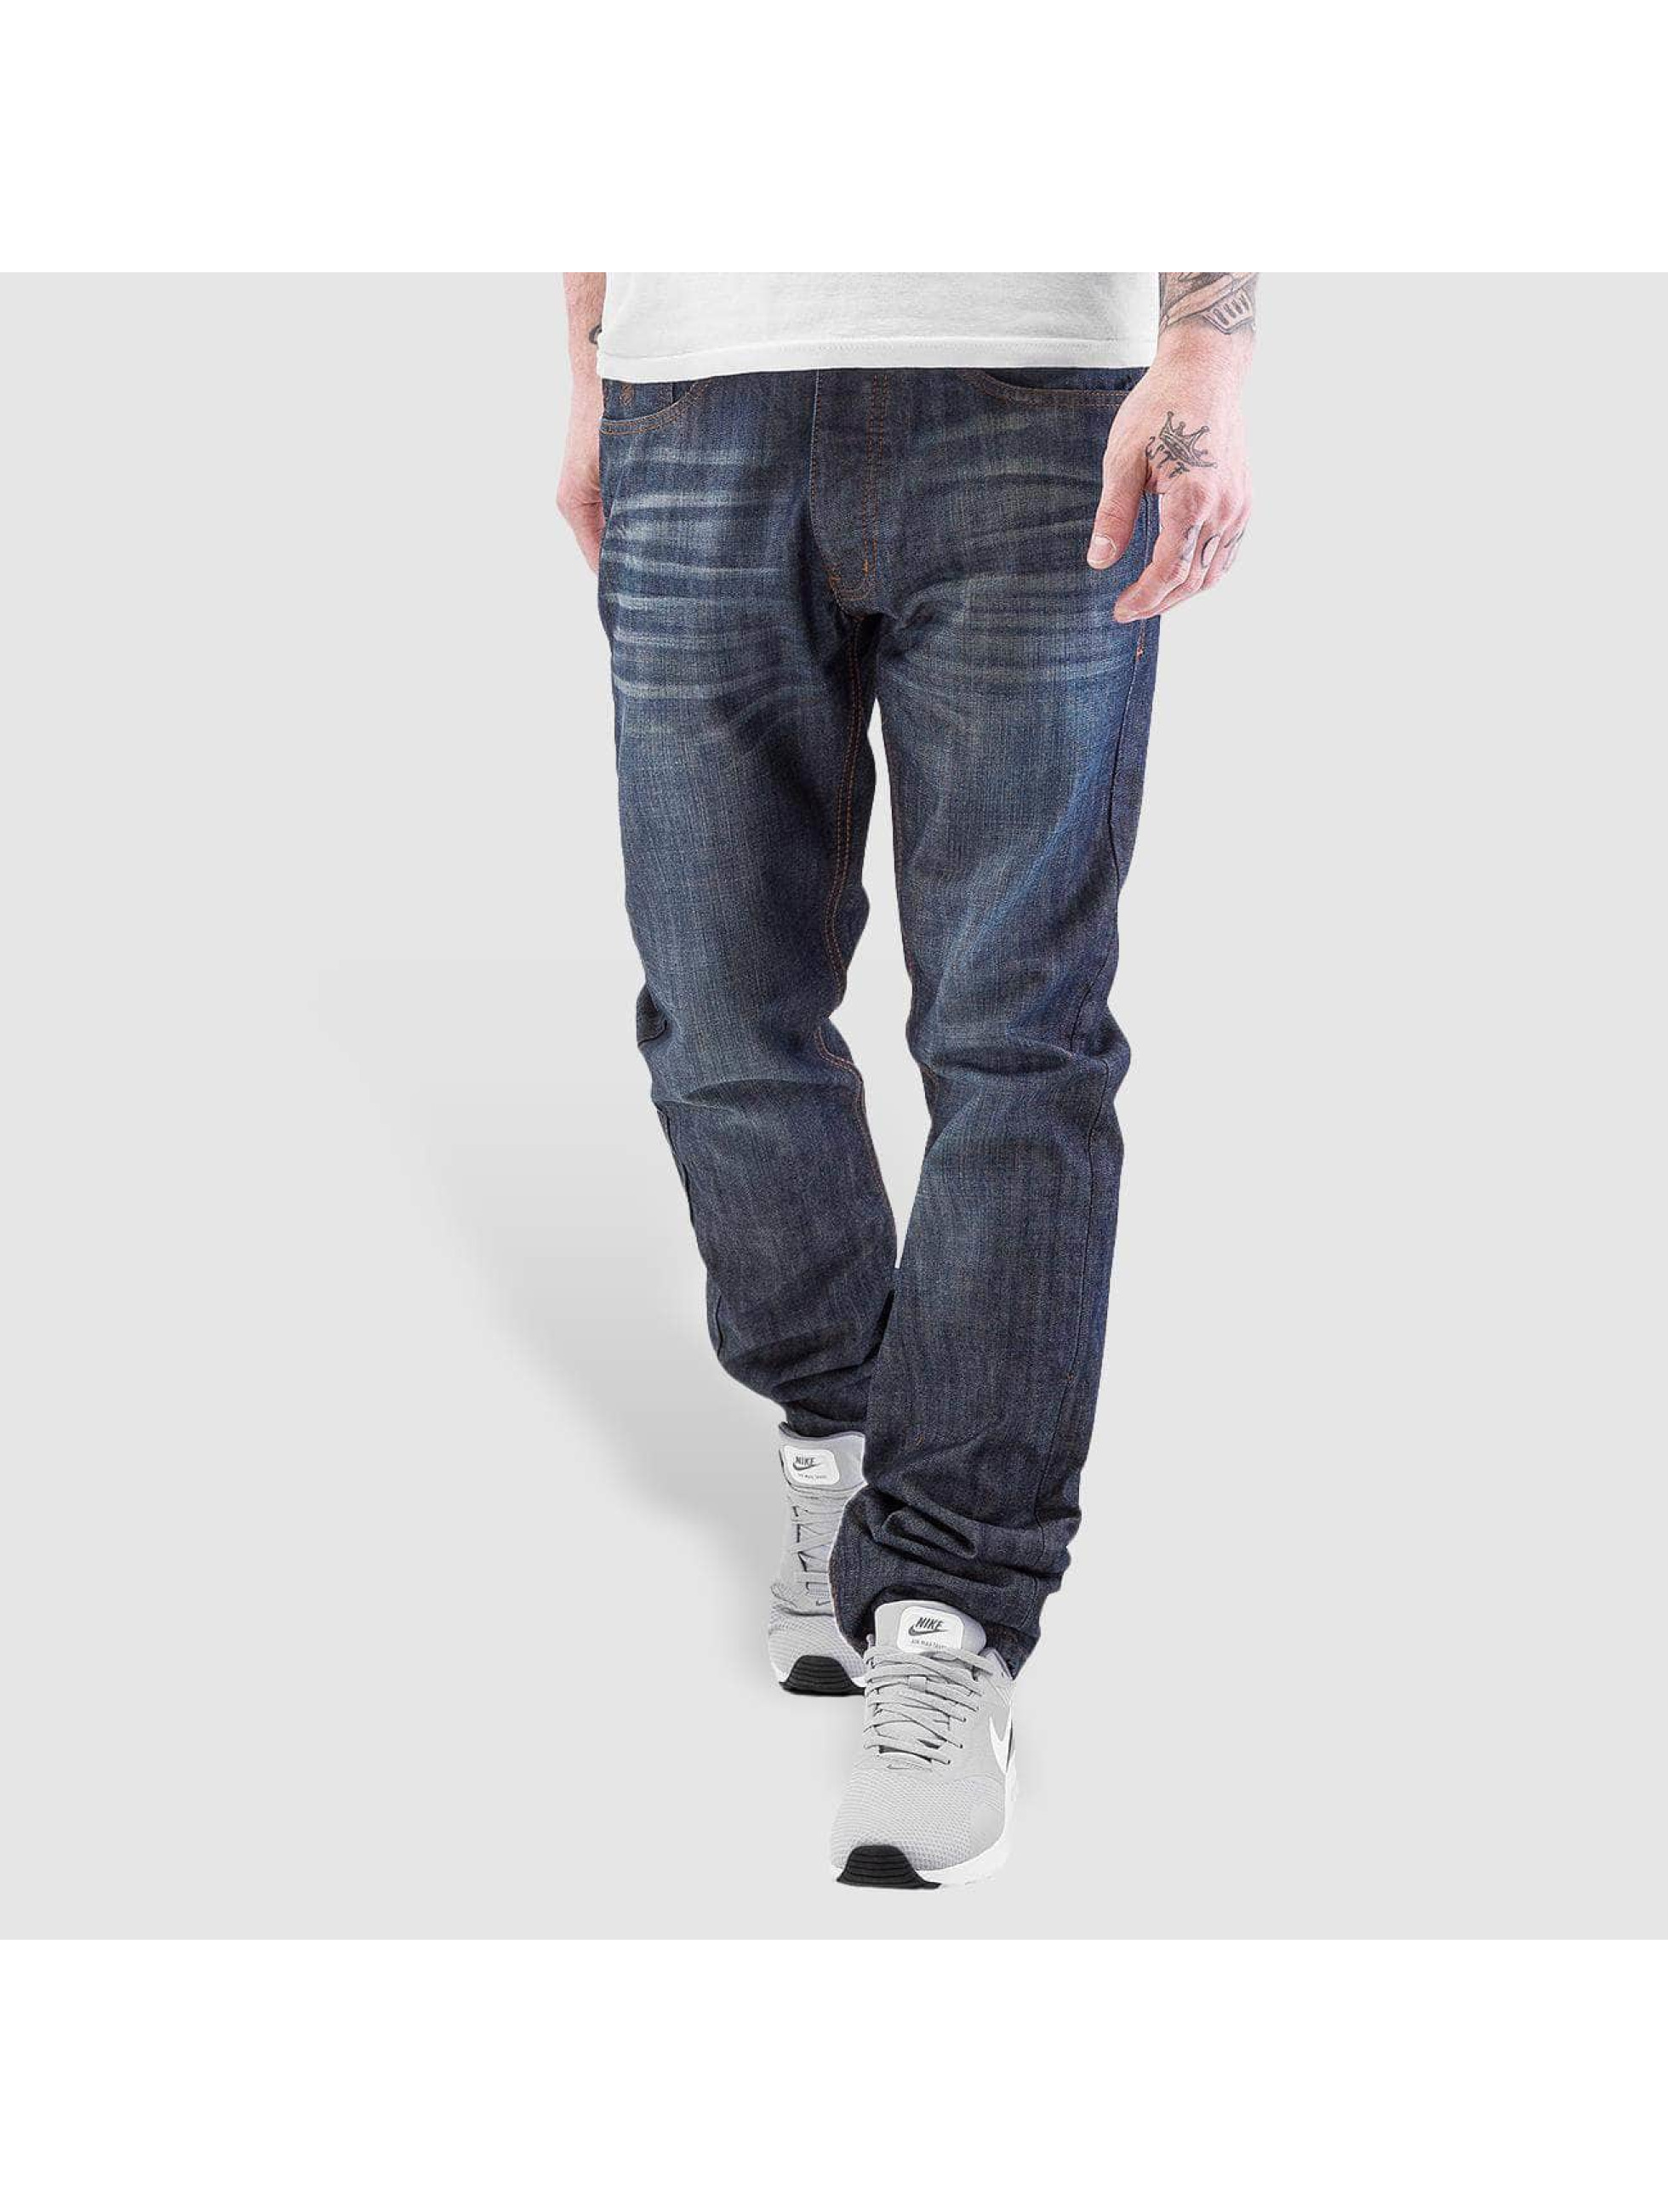 Rocawear / Straight Fit Jeans Leather Patch in blue W 36